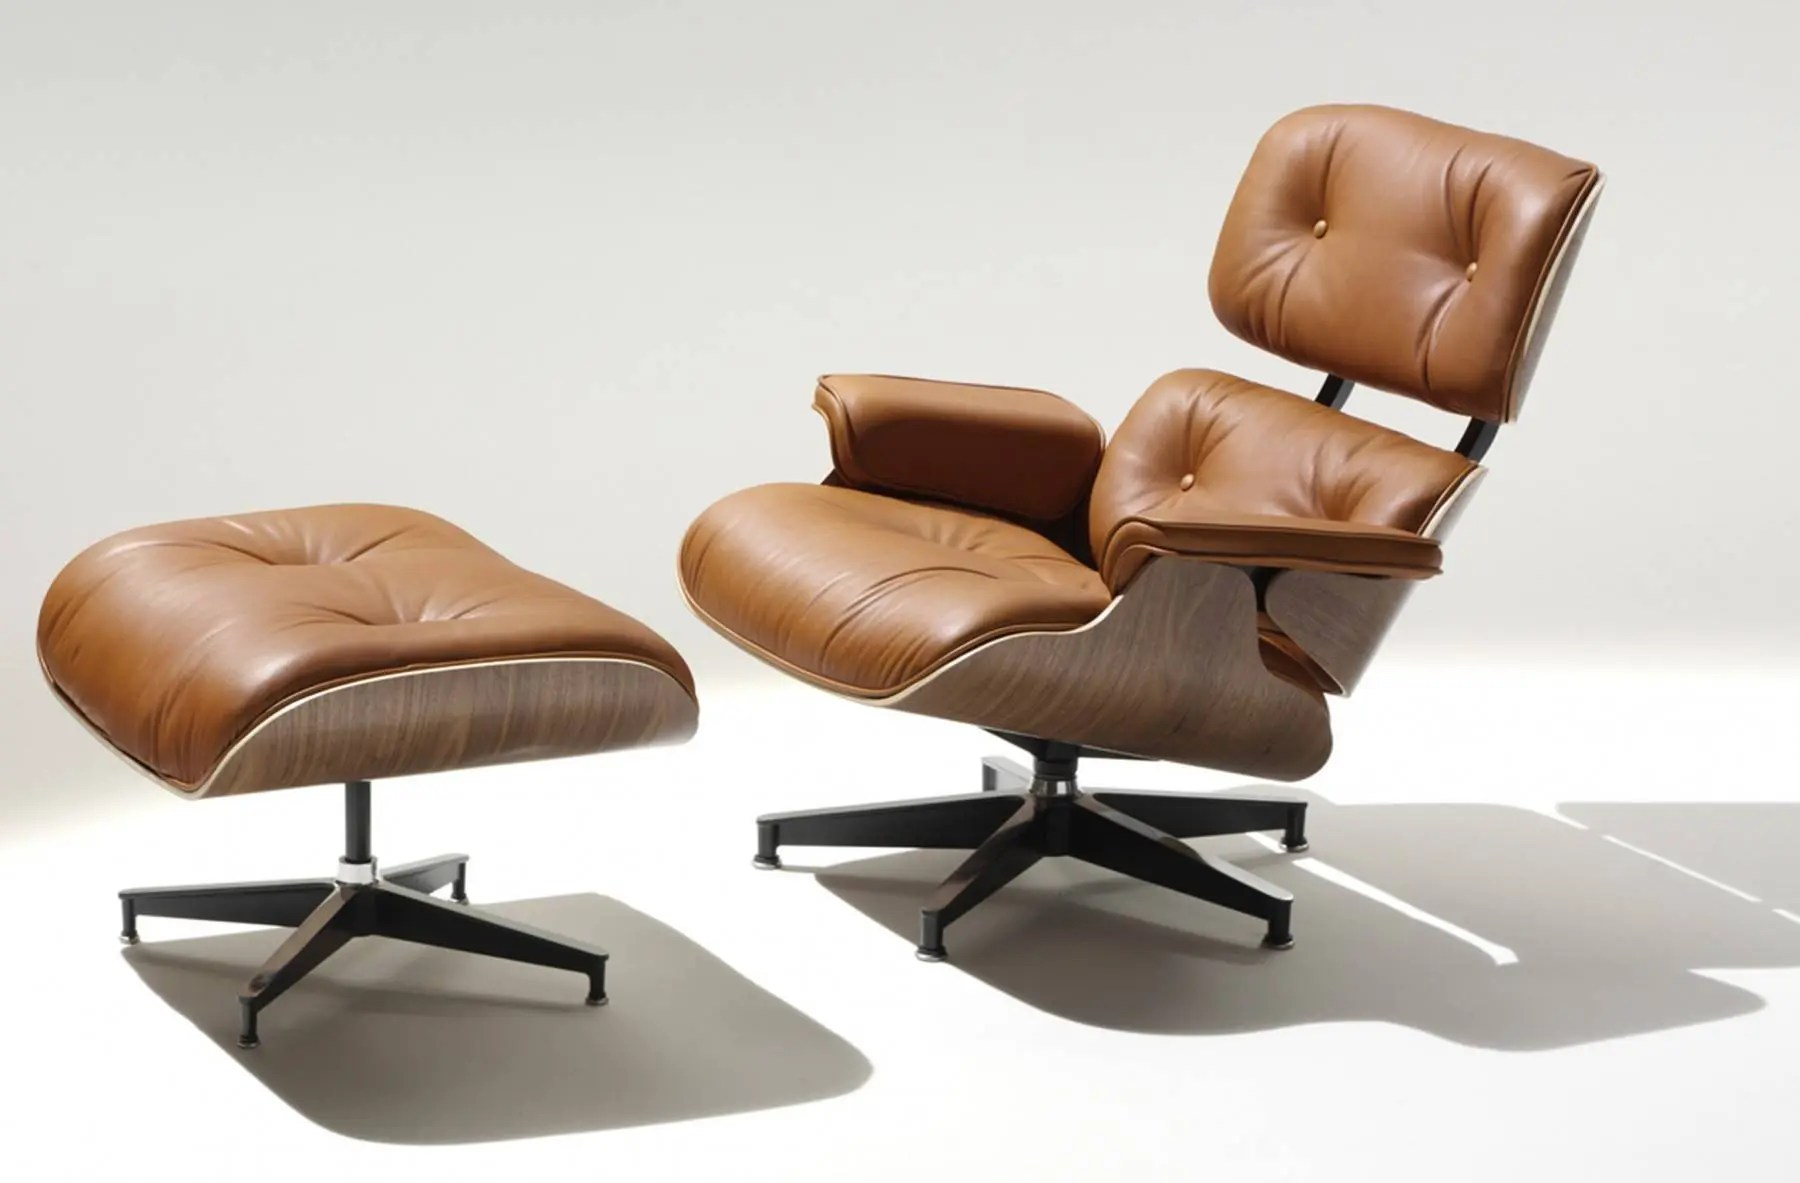 Eanes Chair Herman Miller Eames Lounge Chair And Ottoman